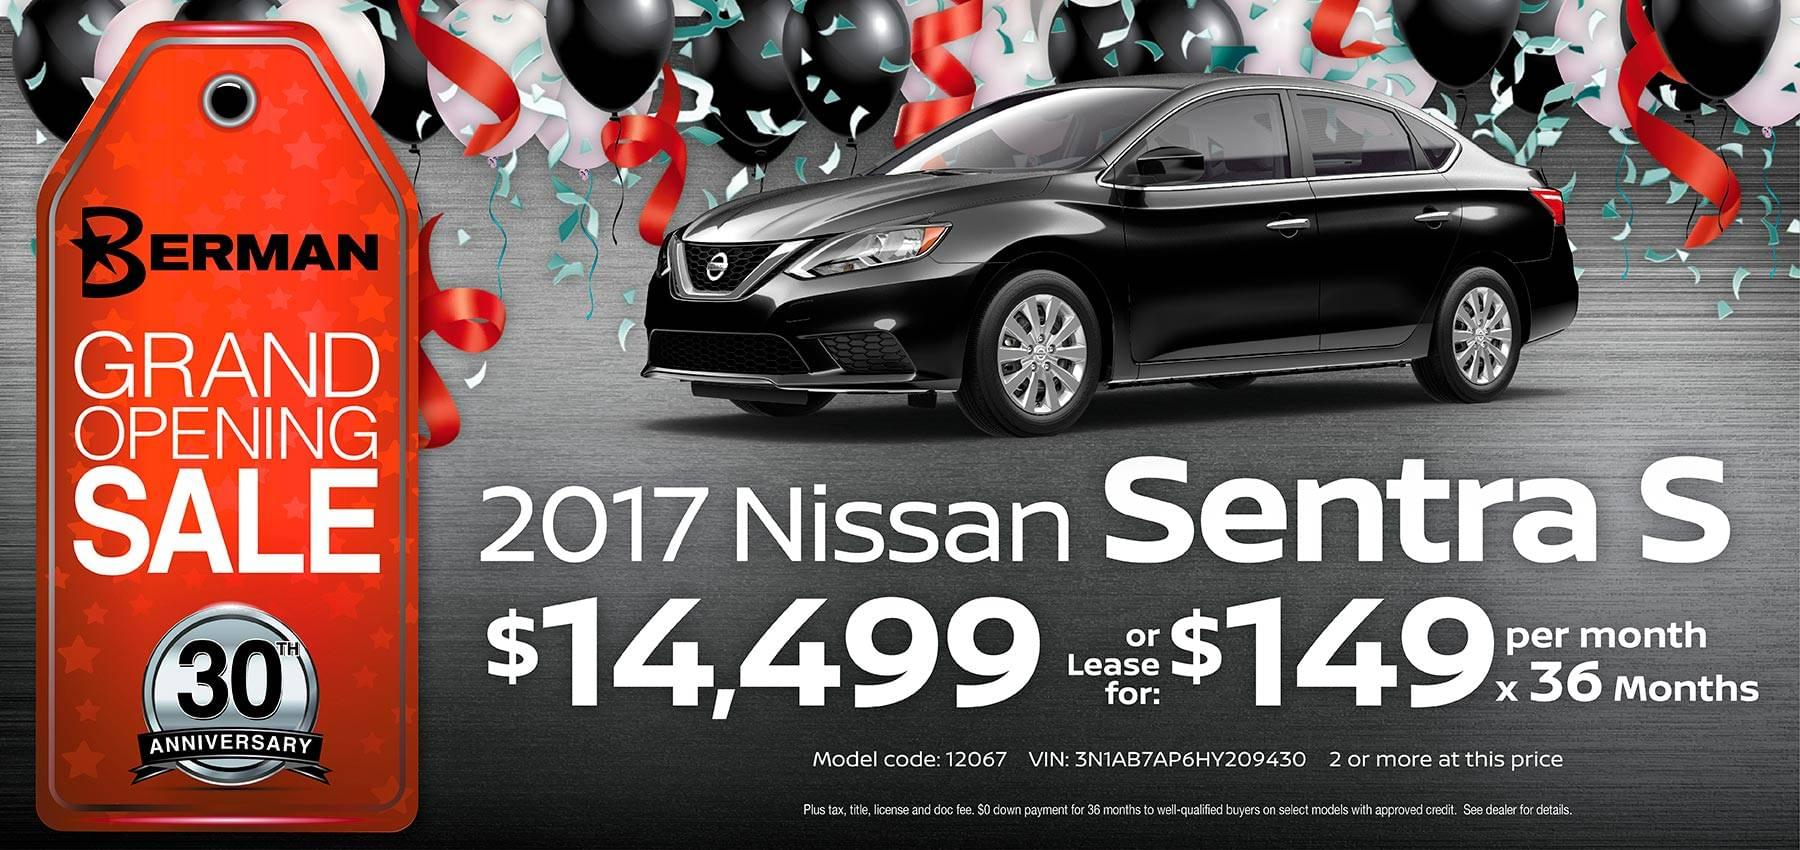 2017 Nissan Sentra Berman Nissan of Chicago February Grand Opening Sale